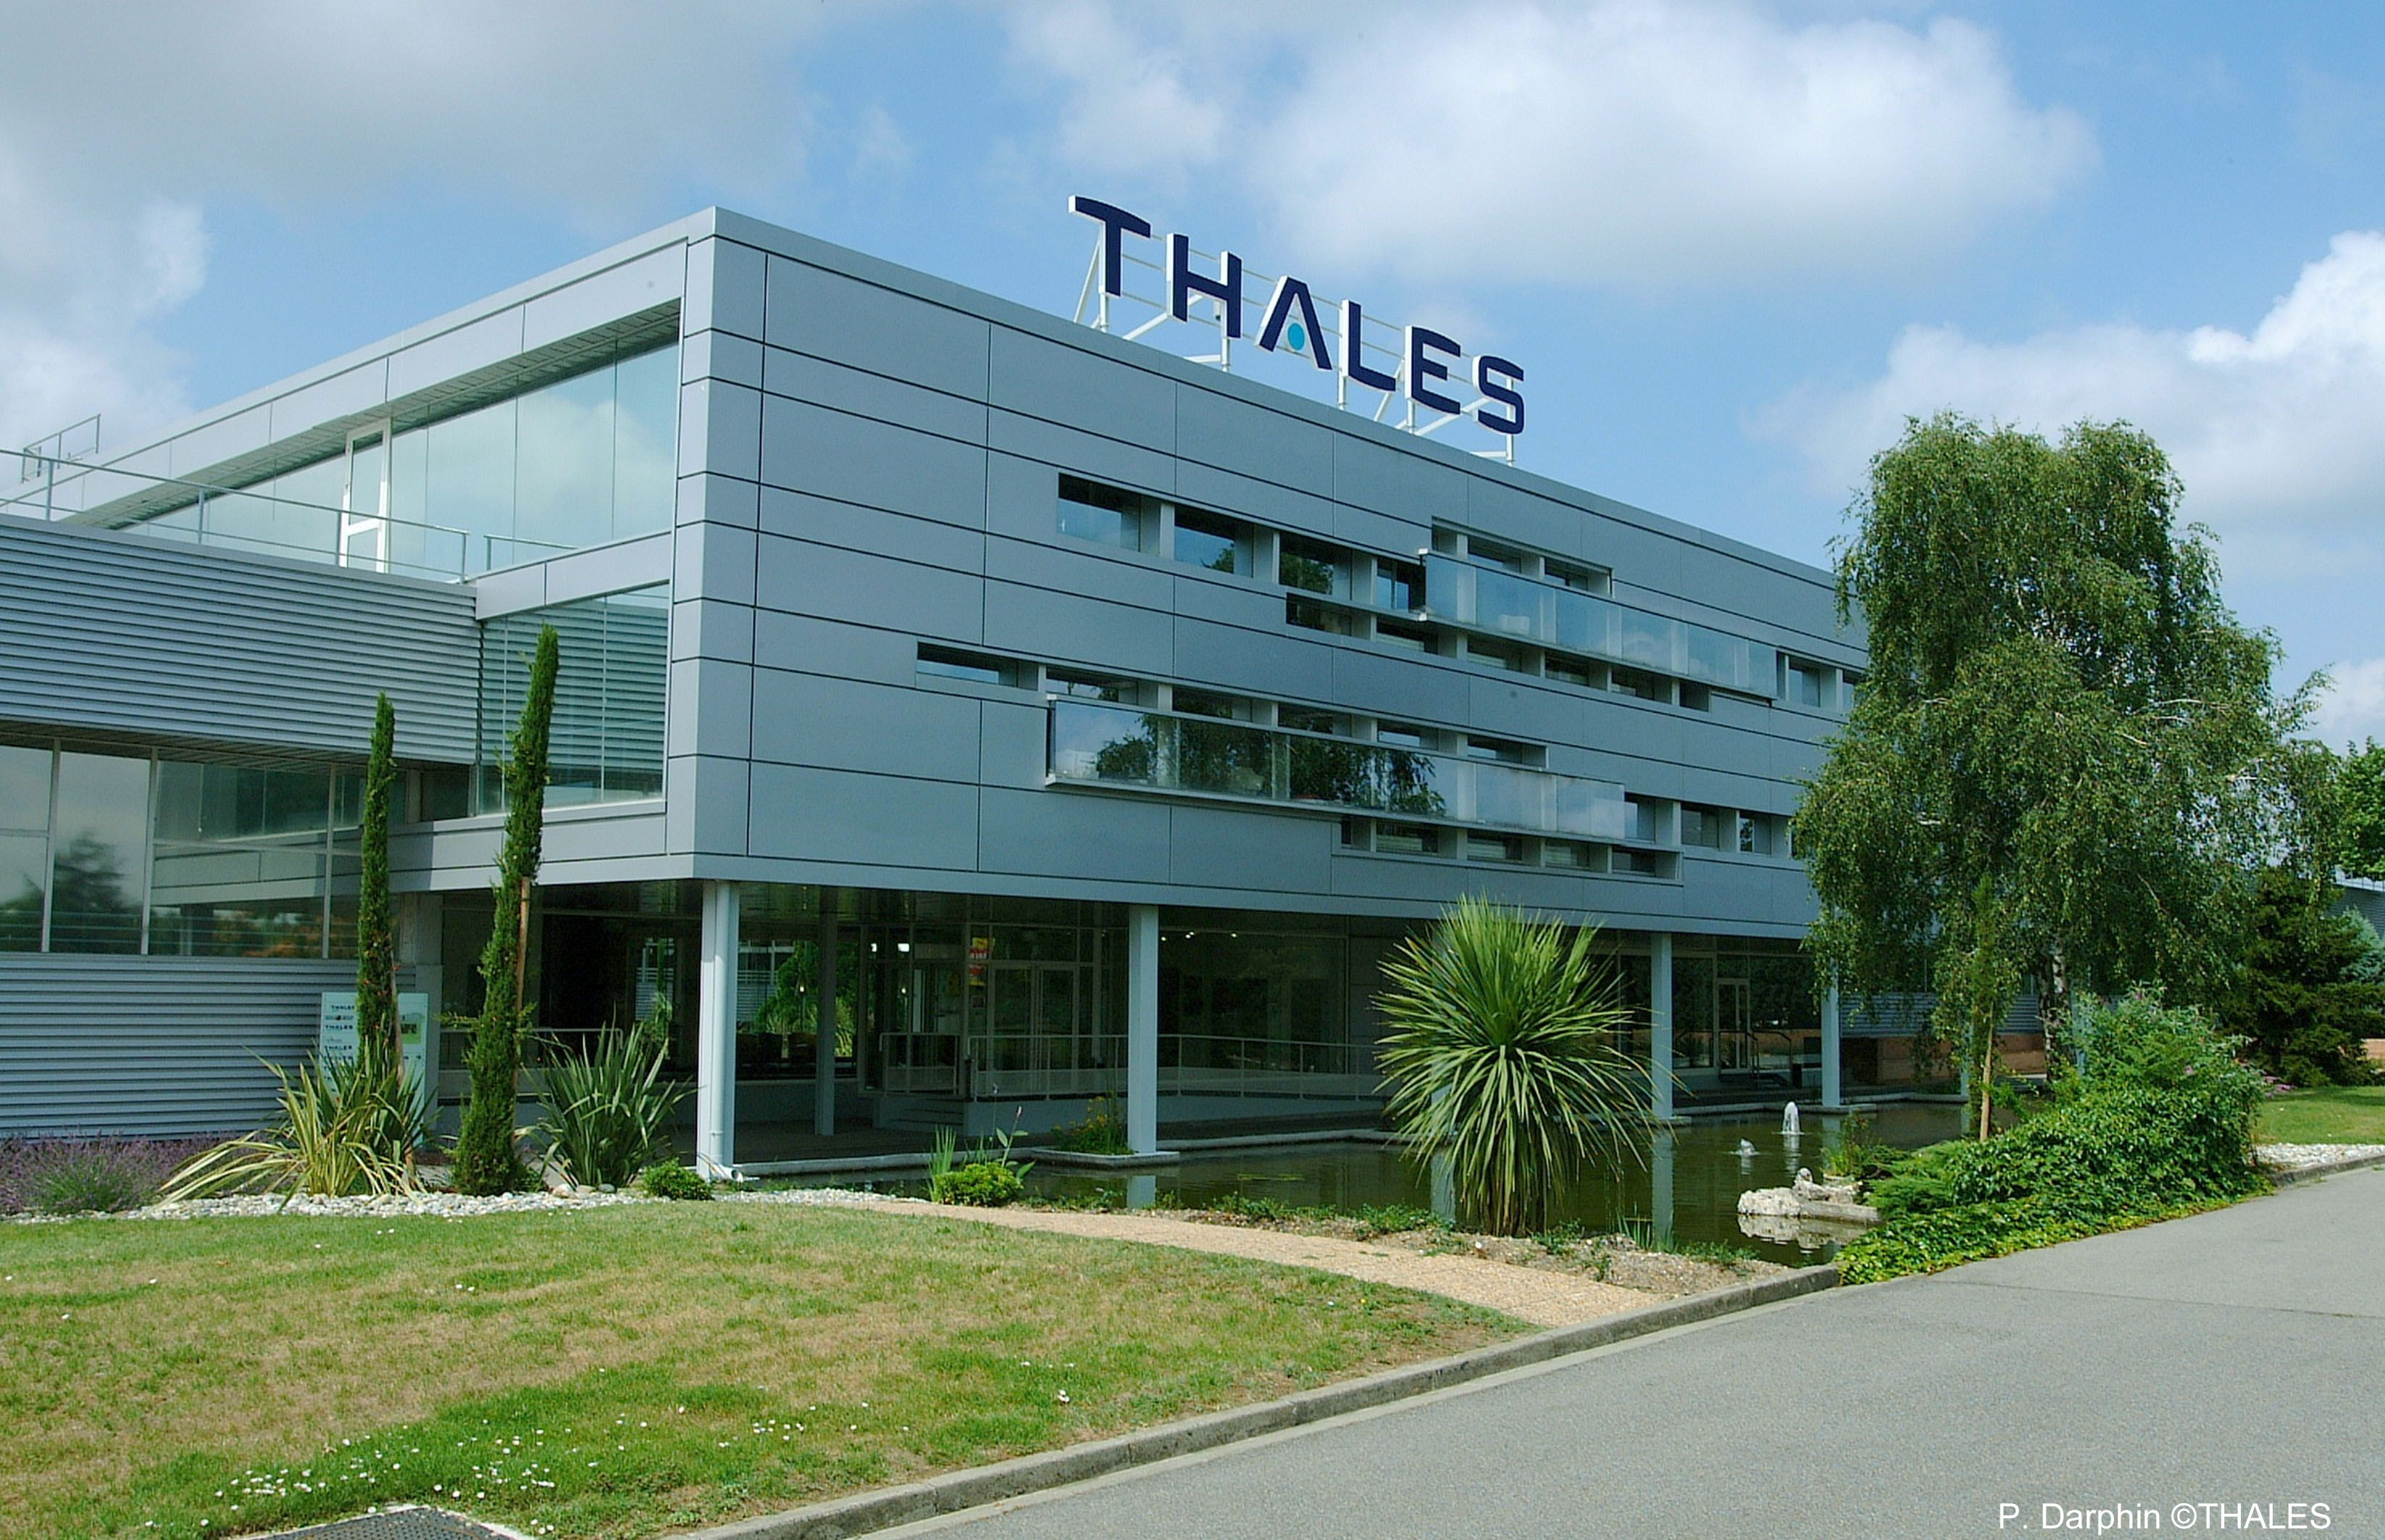 Thales Toulouse France My inspiration